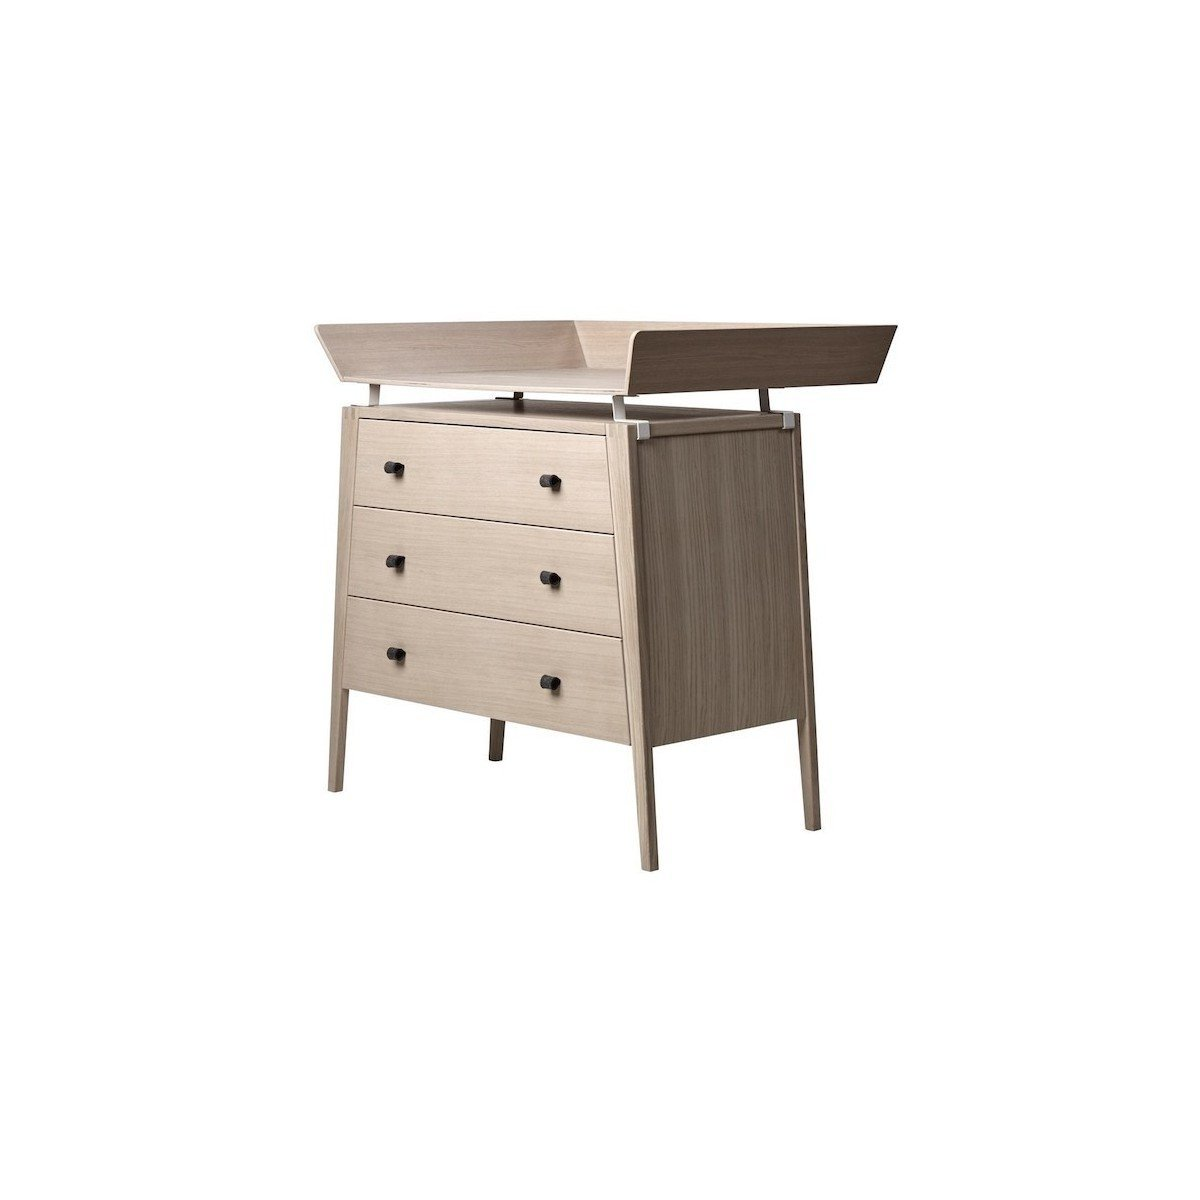 Plan langer commode linea - Plan a langer commode universel ...